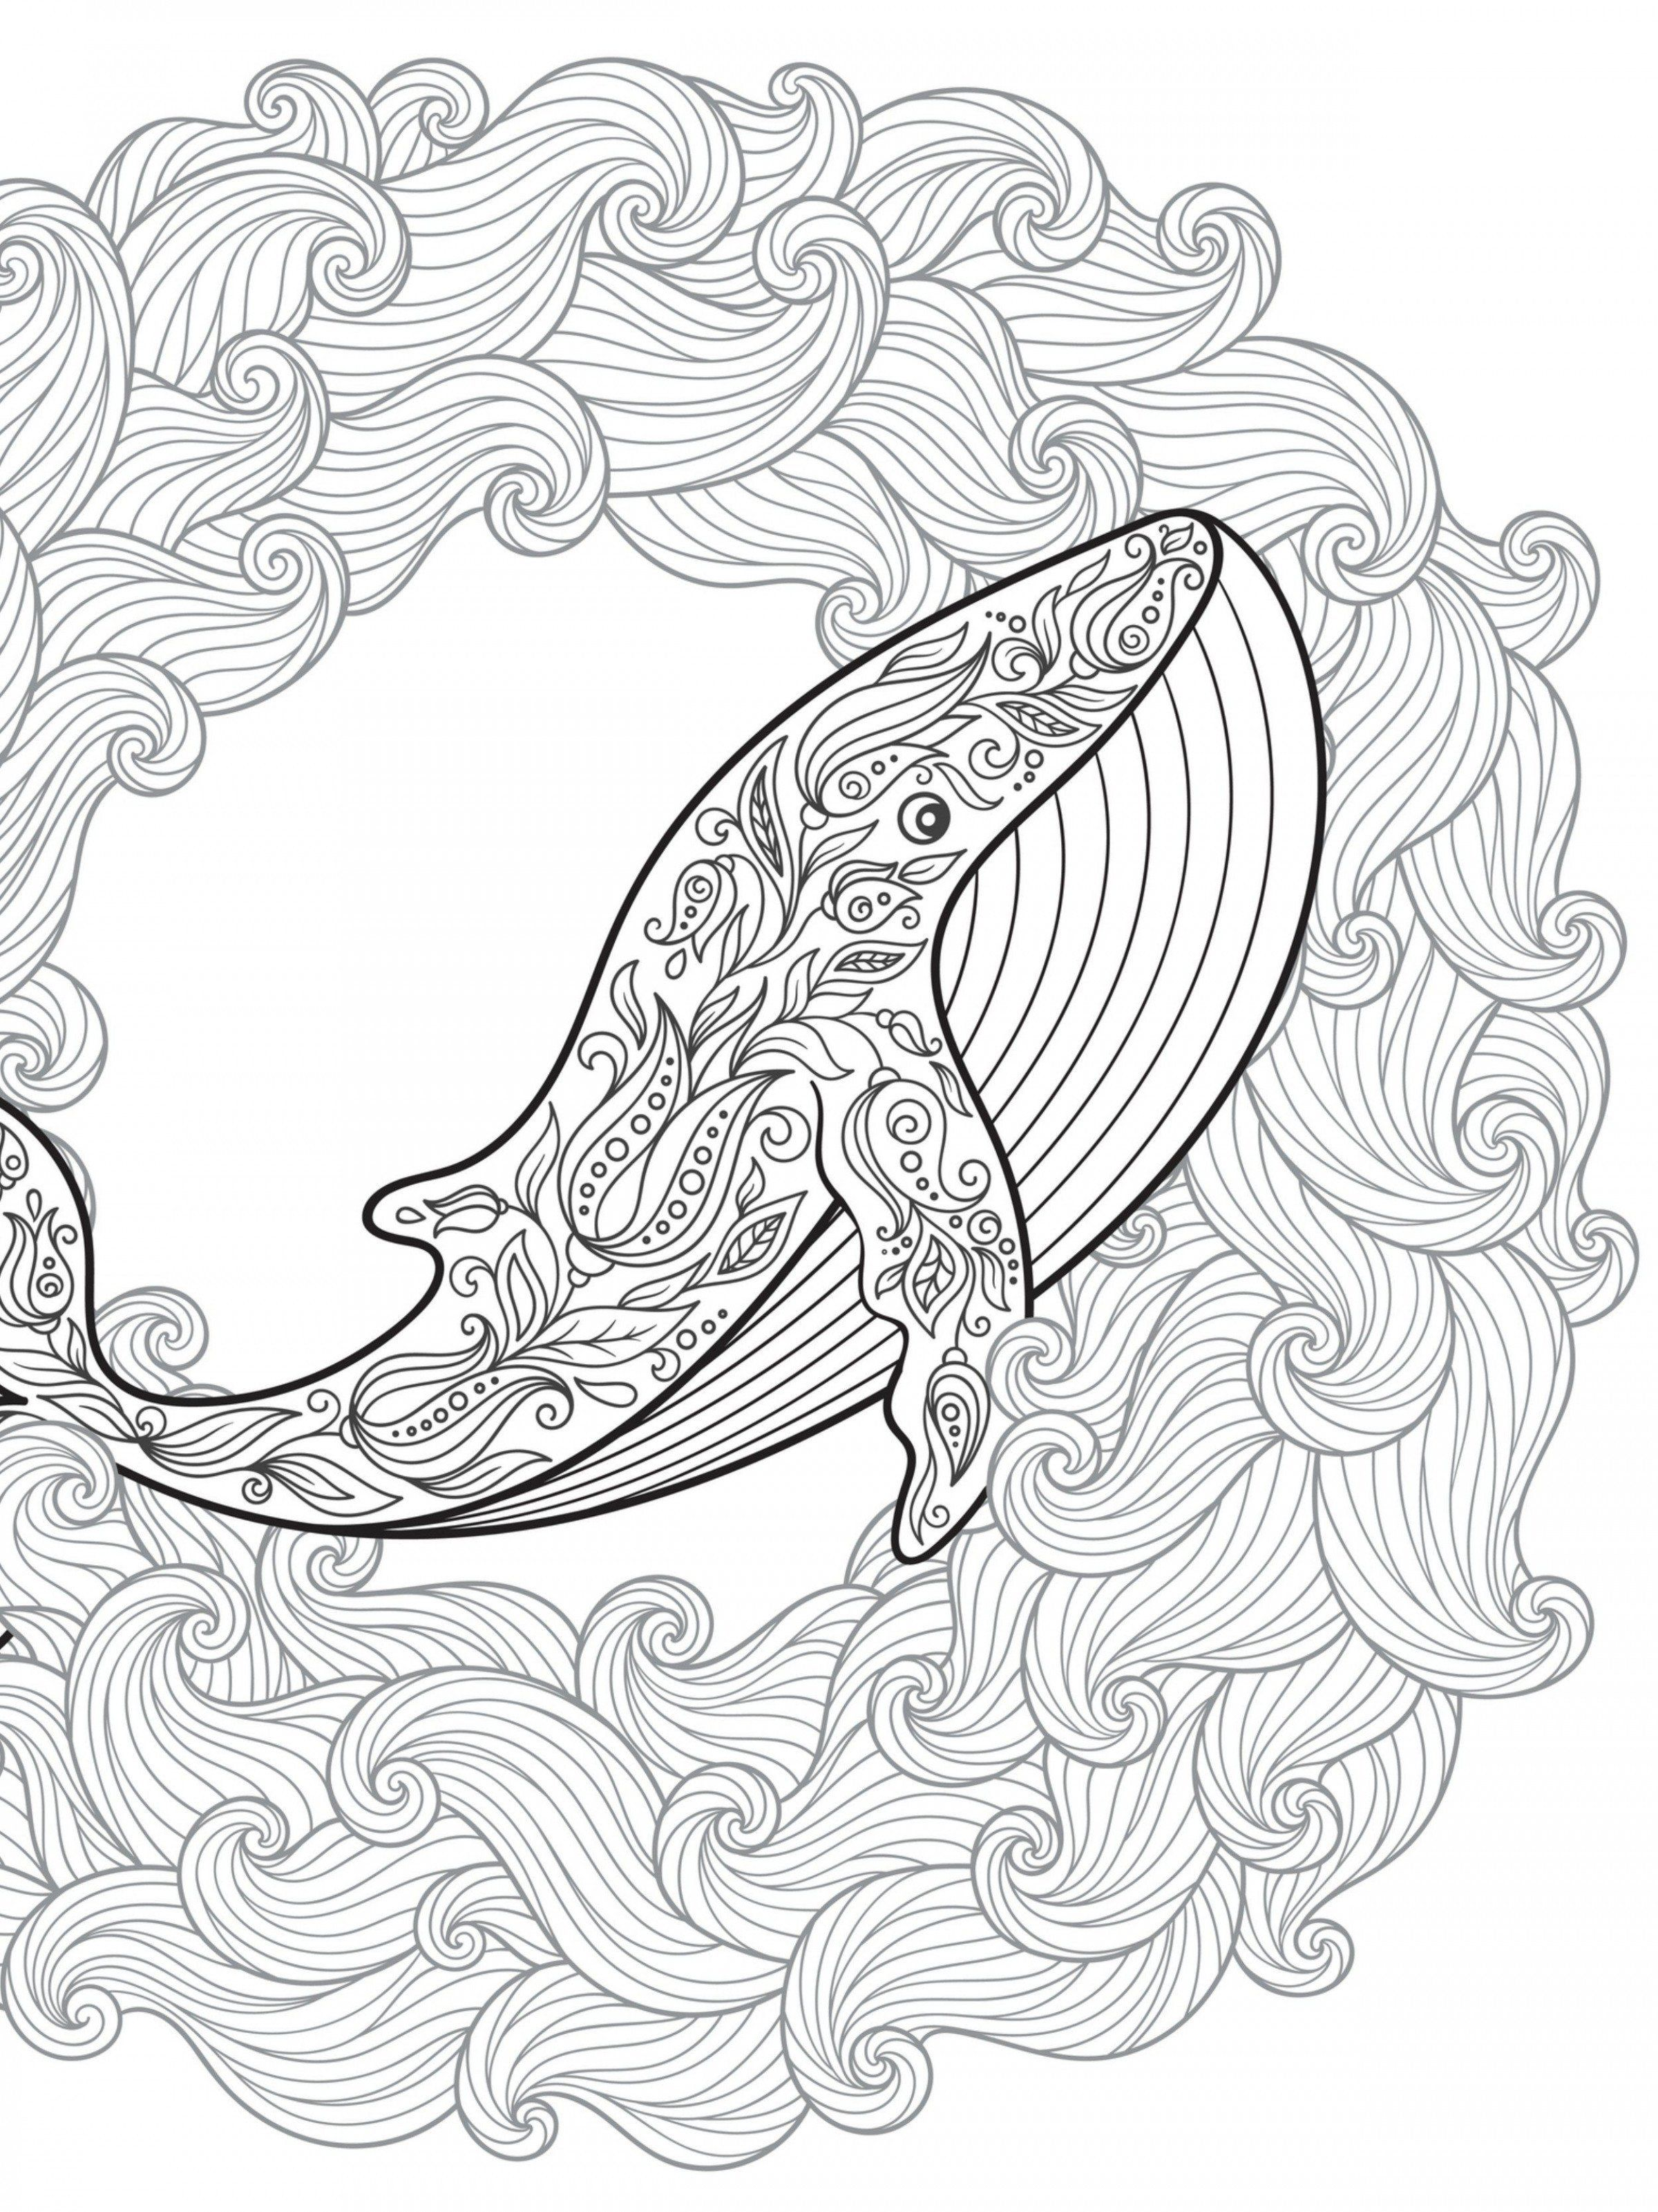 Fish Coloring Pages For Adults Unique Coloring Pages Websites Whale Coloring Pages Mandala Coloring Pages Fish Coloring Page